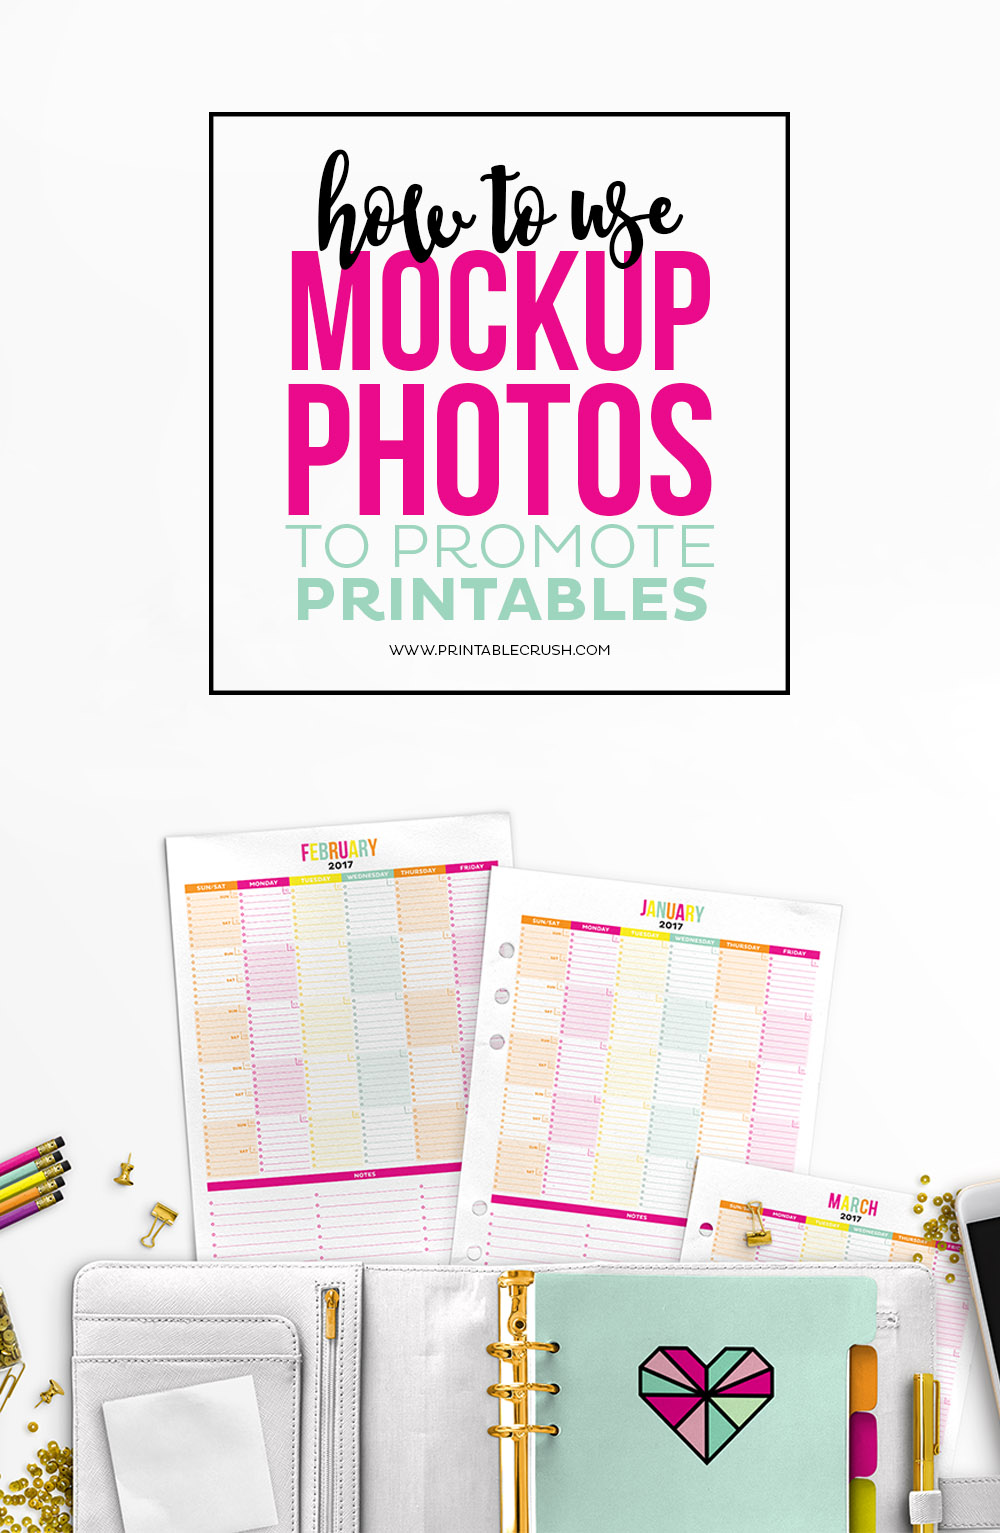 Don't have the photography skills yet? Learn how to Use Mockup Photos to Promote Printables! Get tips for making mockups look natural and match them to your brand.